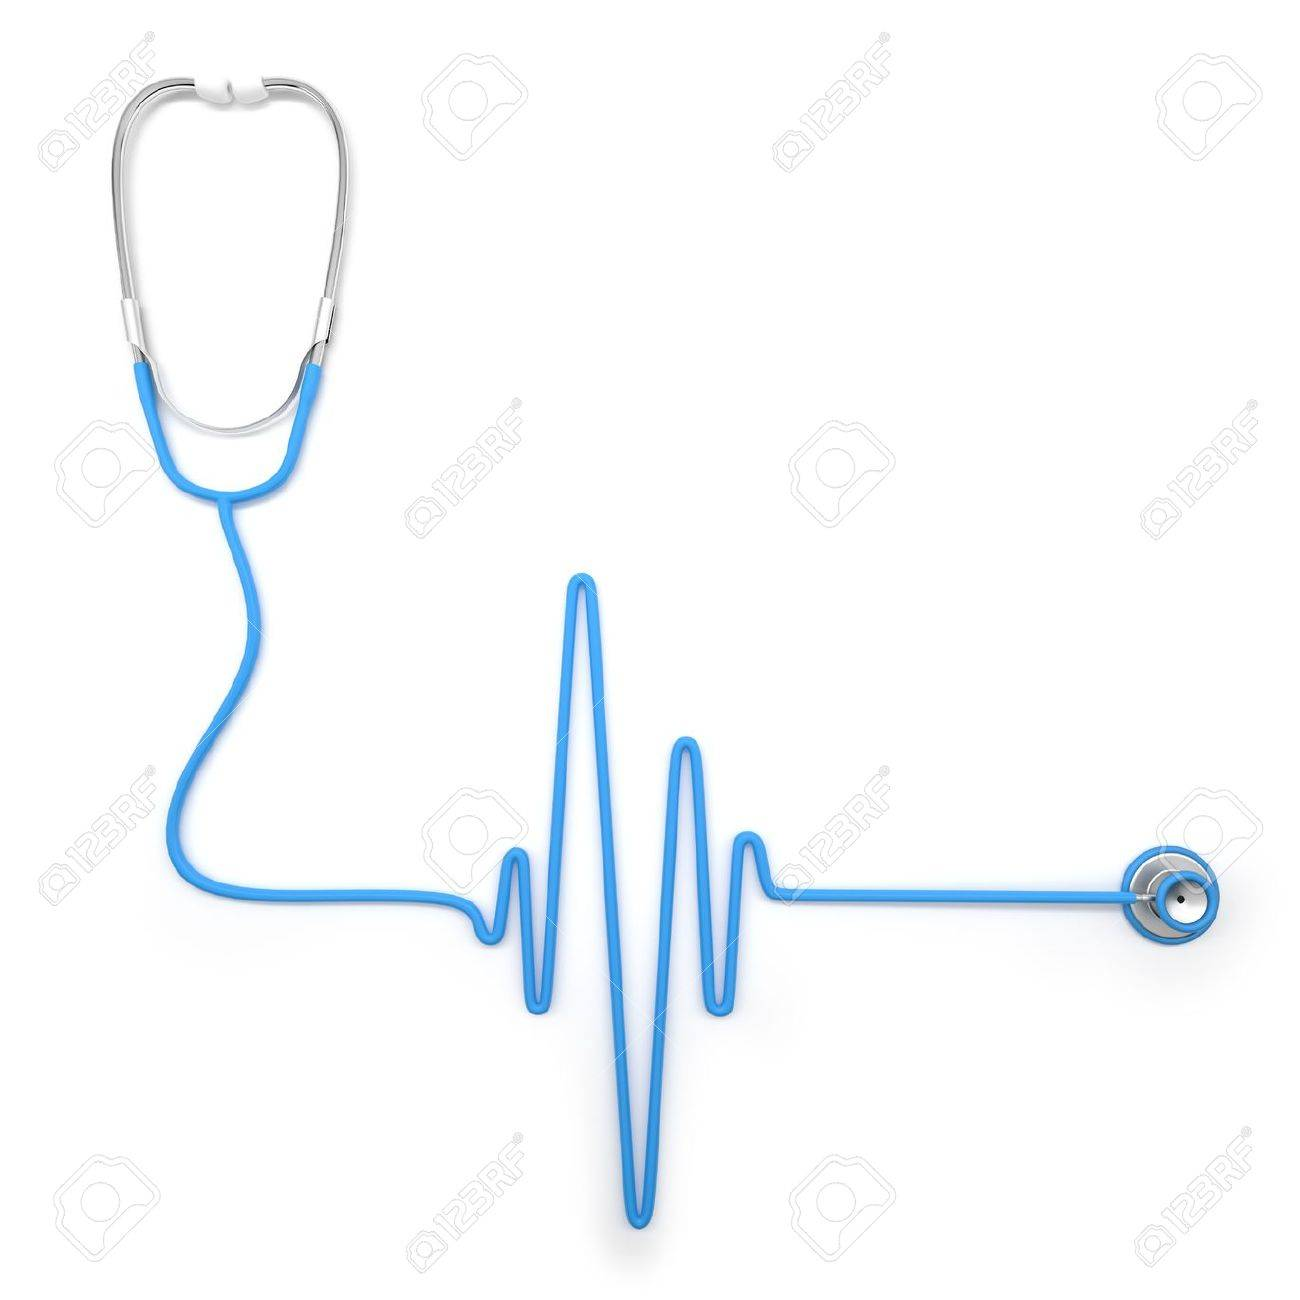 Stethoscope in shape of electrocardiogram line Stock Photo - 16318013